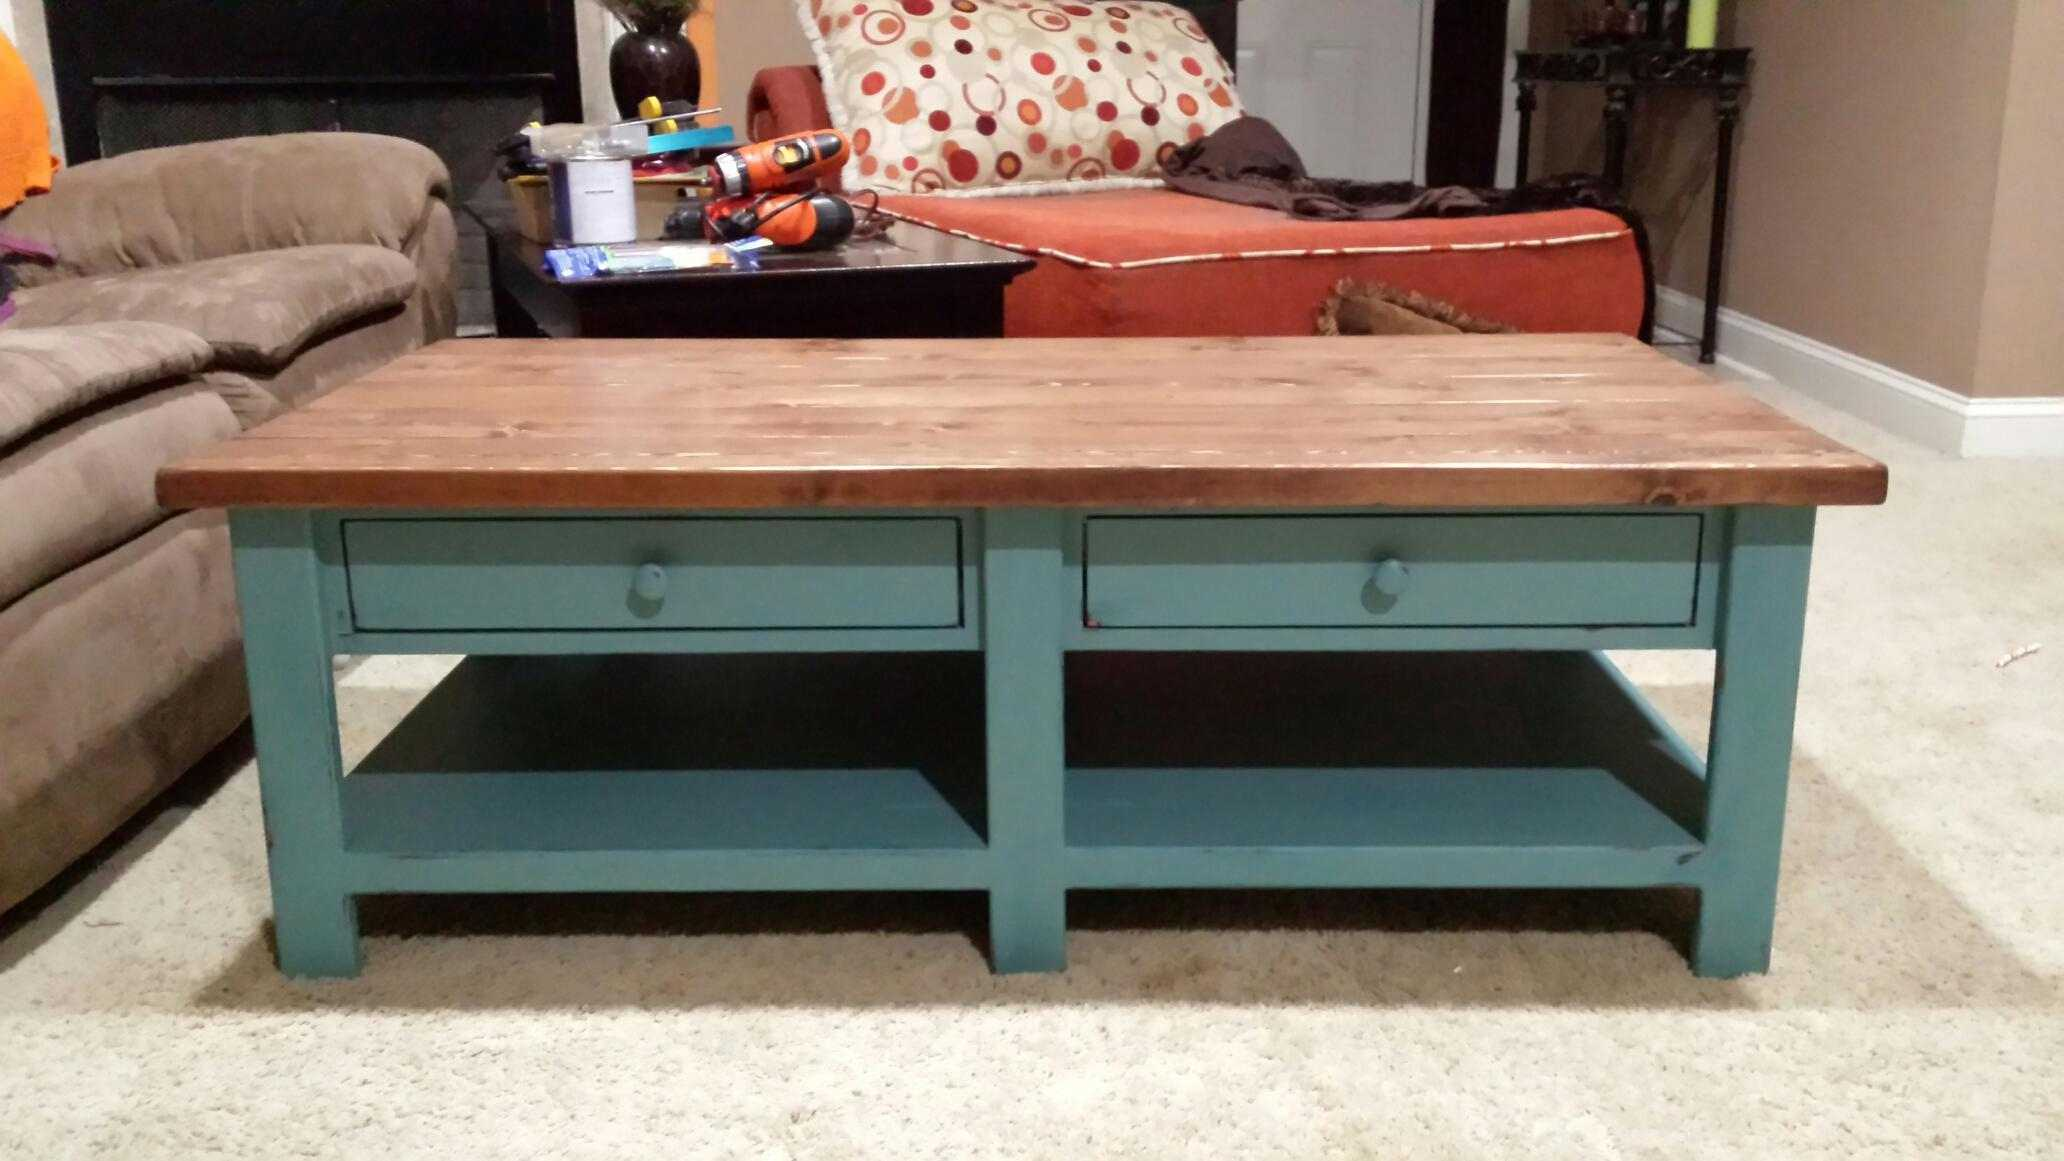 21 Free DIY Coffee Table Plans You Can Build Today on Coffee Table Plans  id=39402